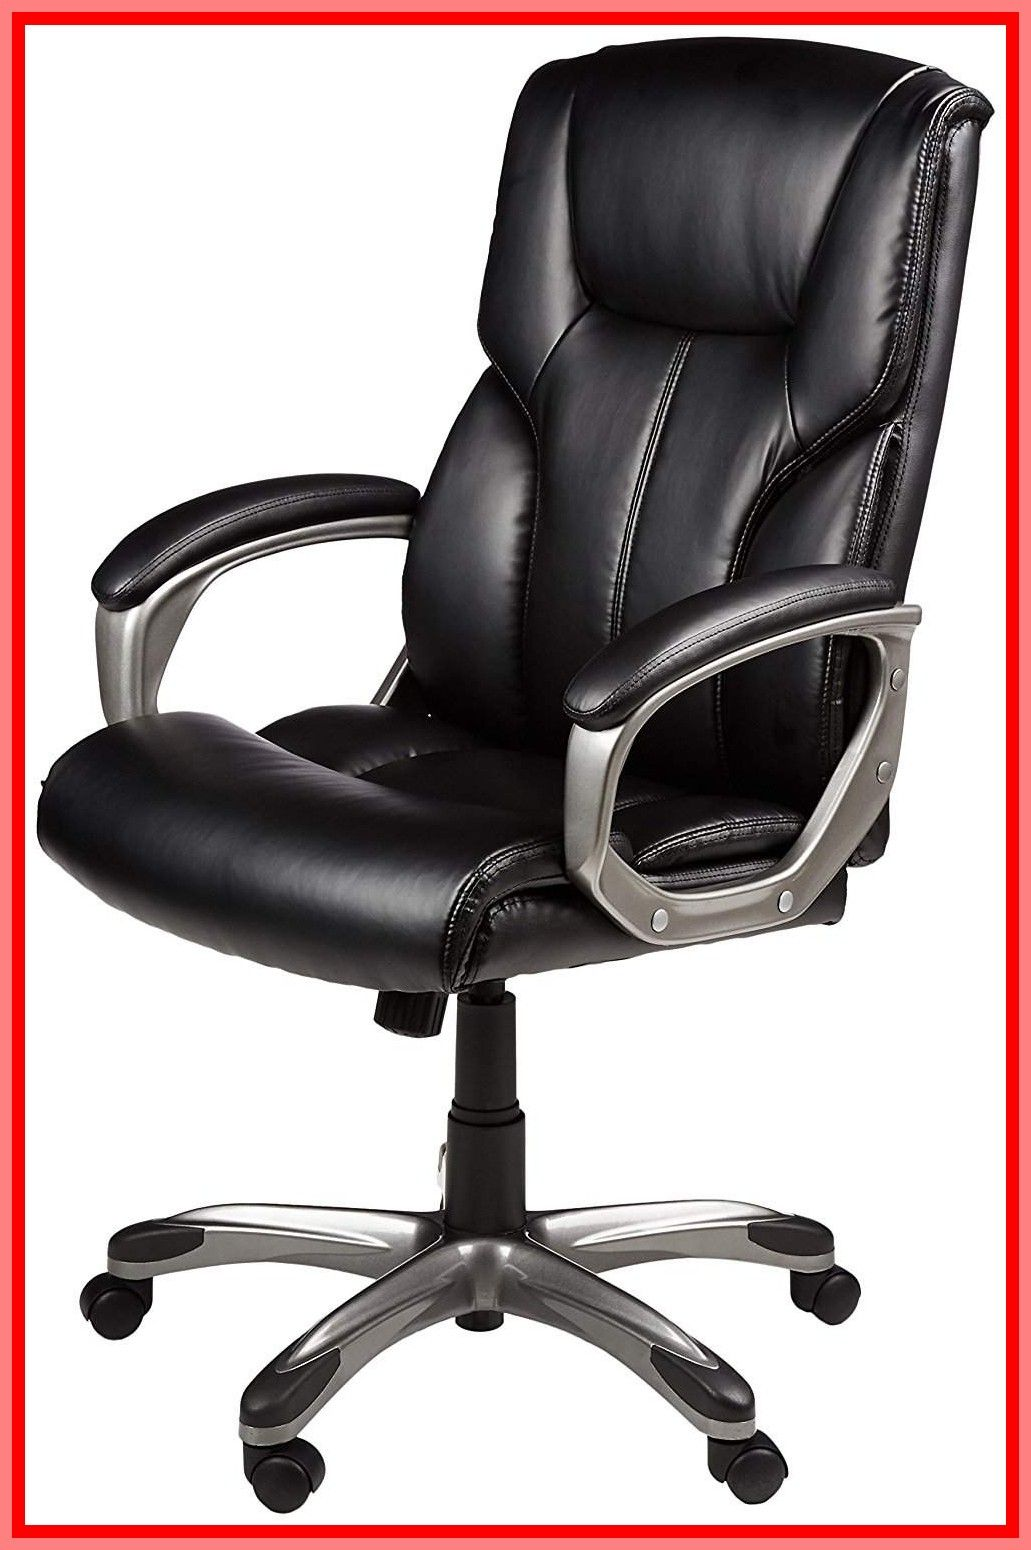 125 Reference Of Office Bench Seat In 2020 Office Chair Best Office Chair Chair